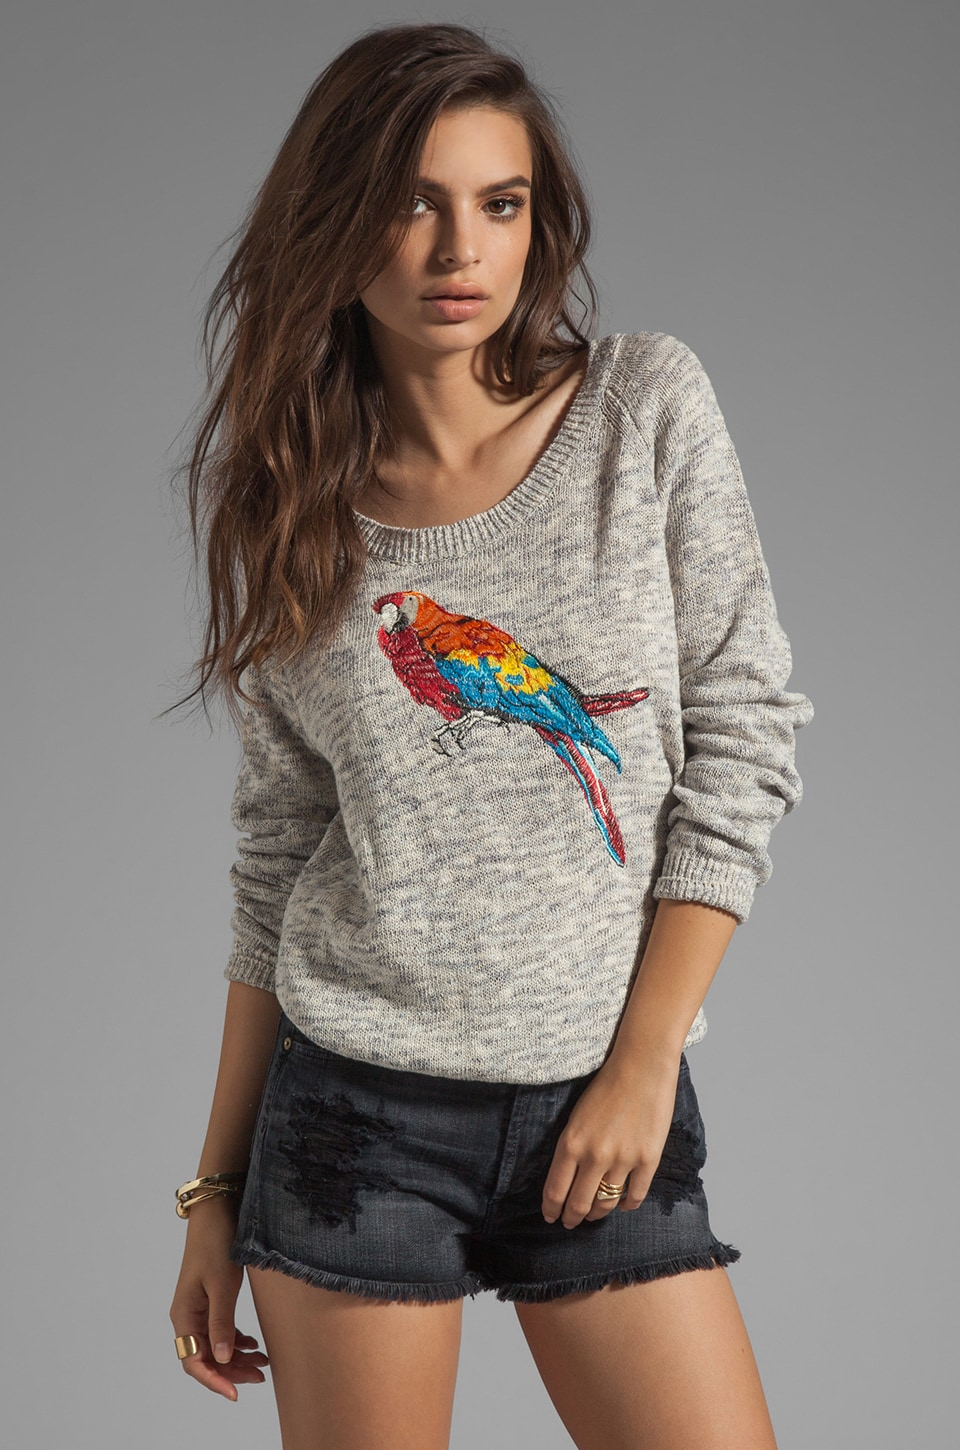 Joie Durene Place Embroidery Sweater in Vintage Heather Grey